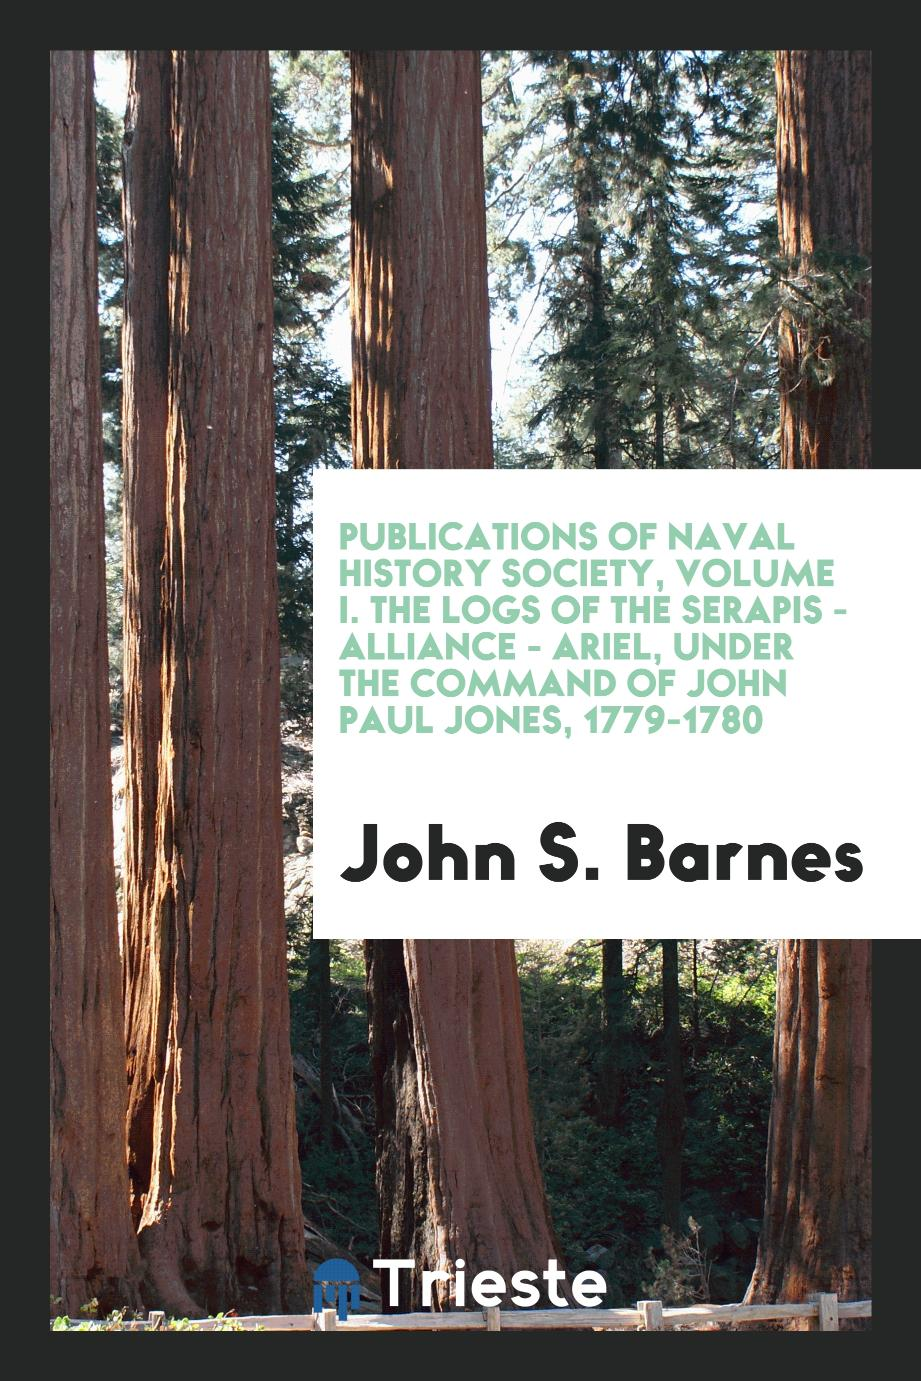 Publications of Naval History Society, Volume I. The Logs of the Serapis - Alliance - Ariel, under the Command of John Paul Jones, 1779-1780